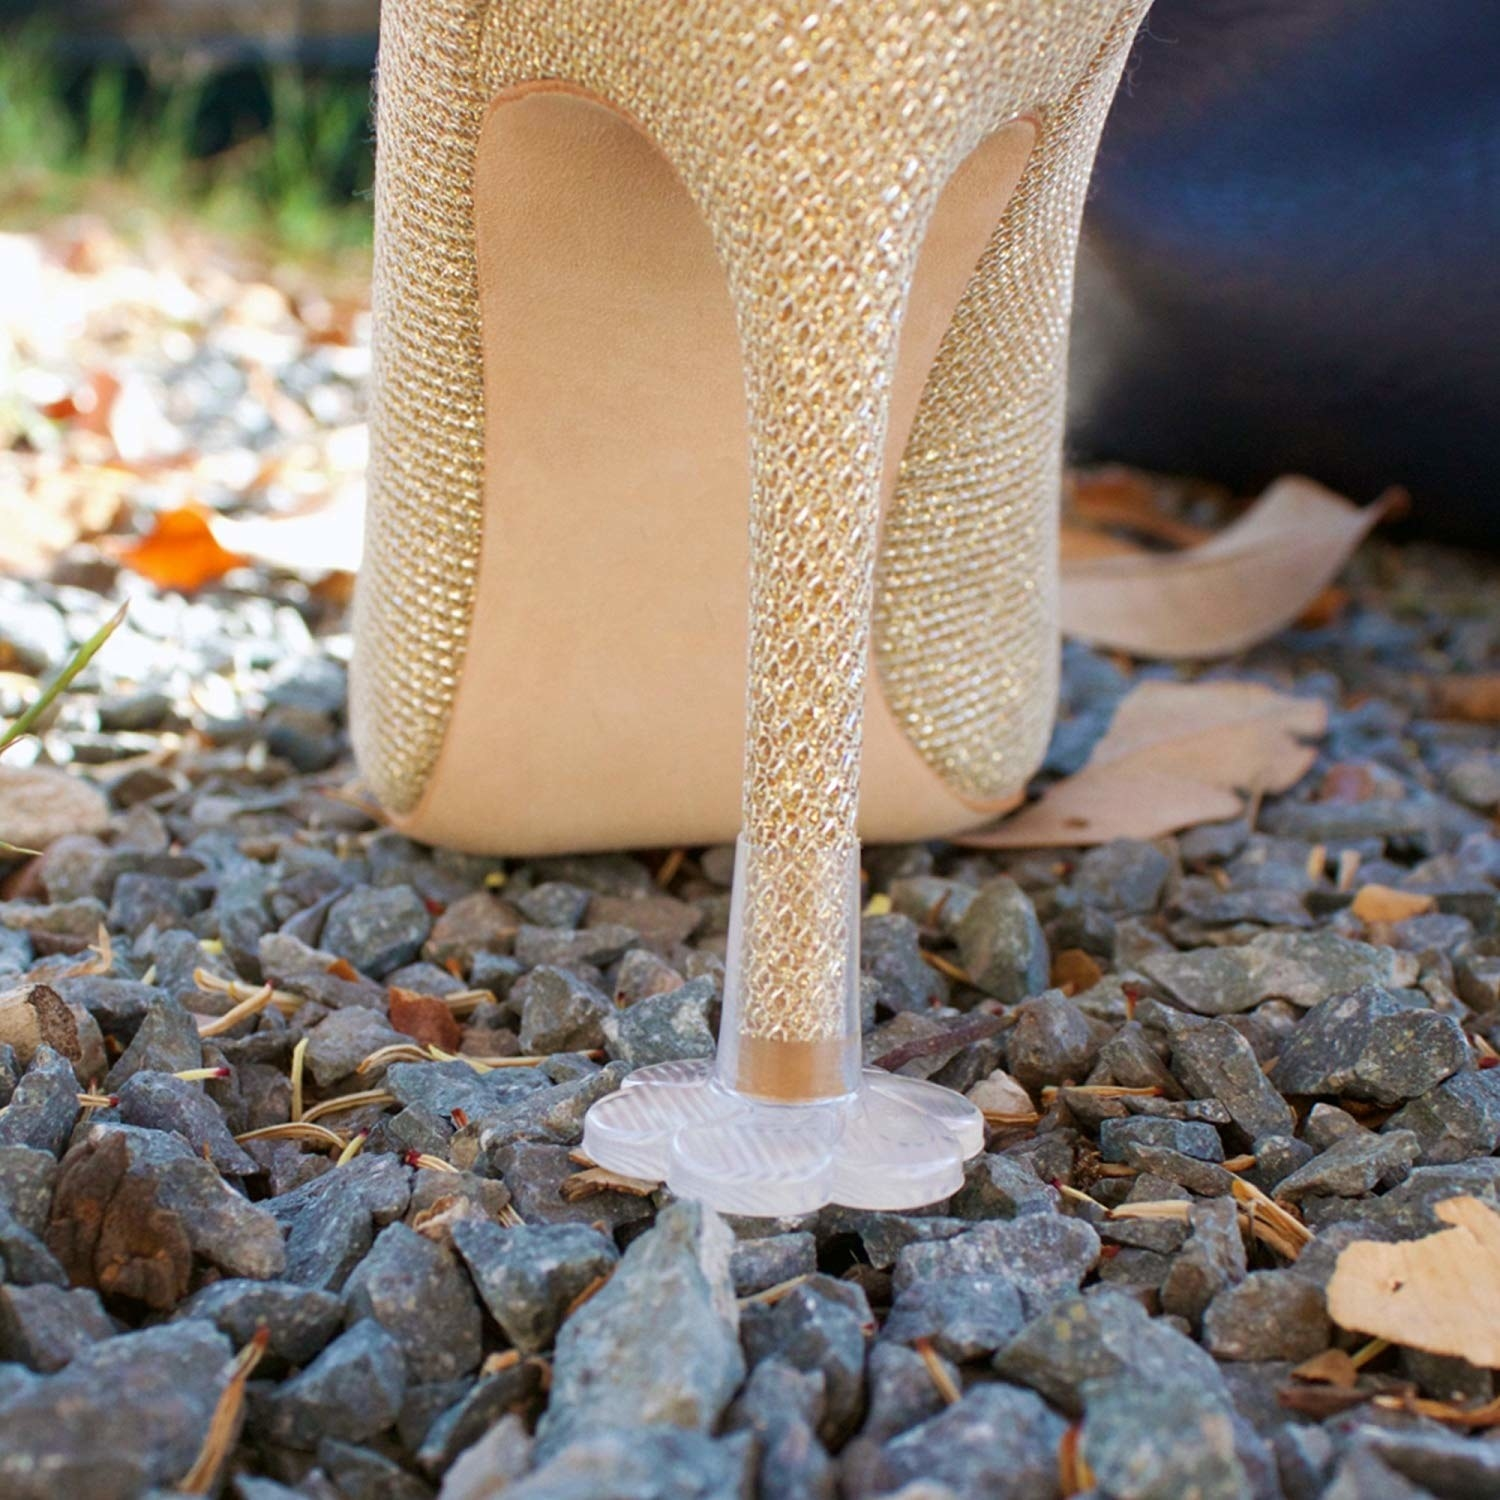 A heel stopper on a pair of high heels placed on gravel.